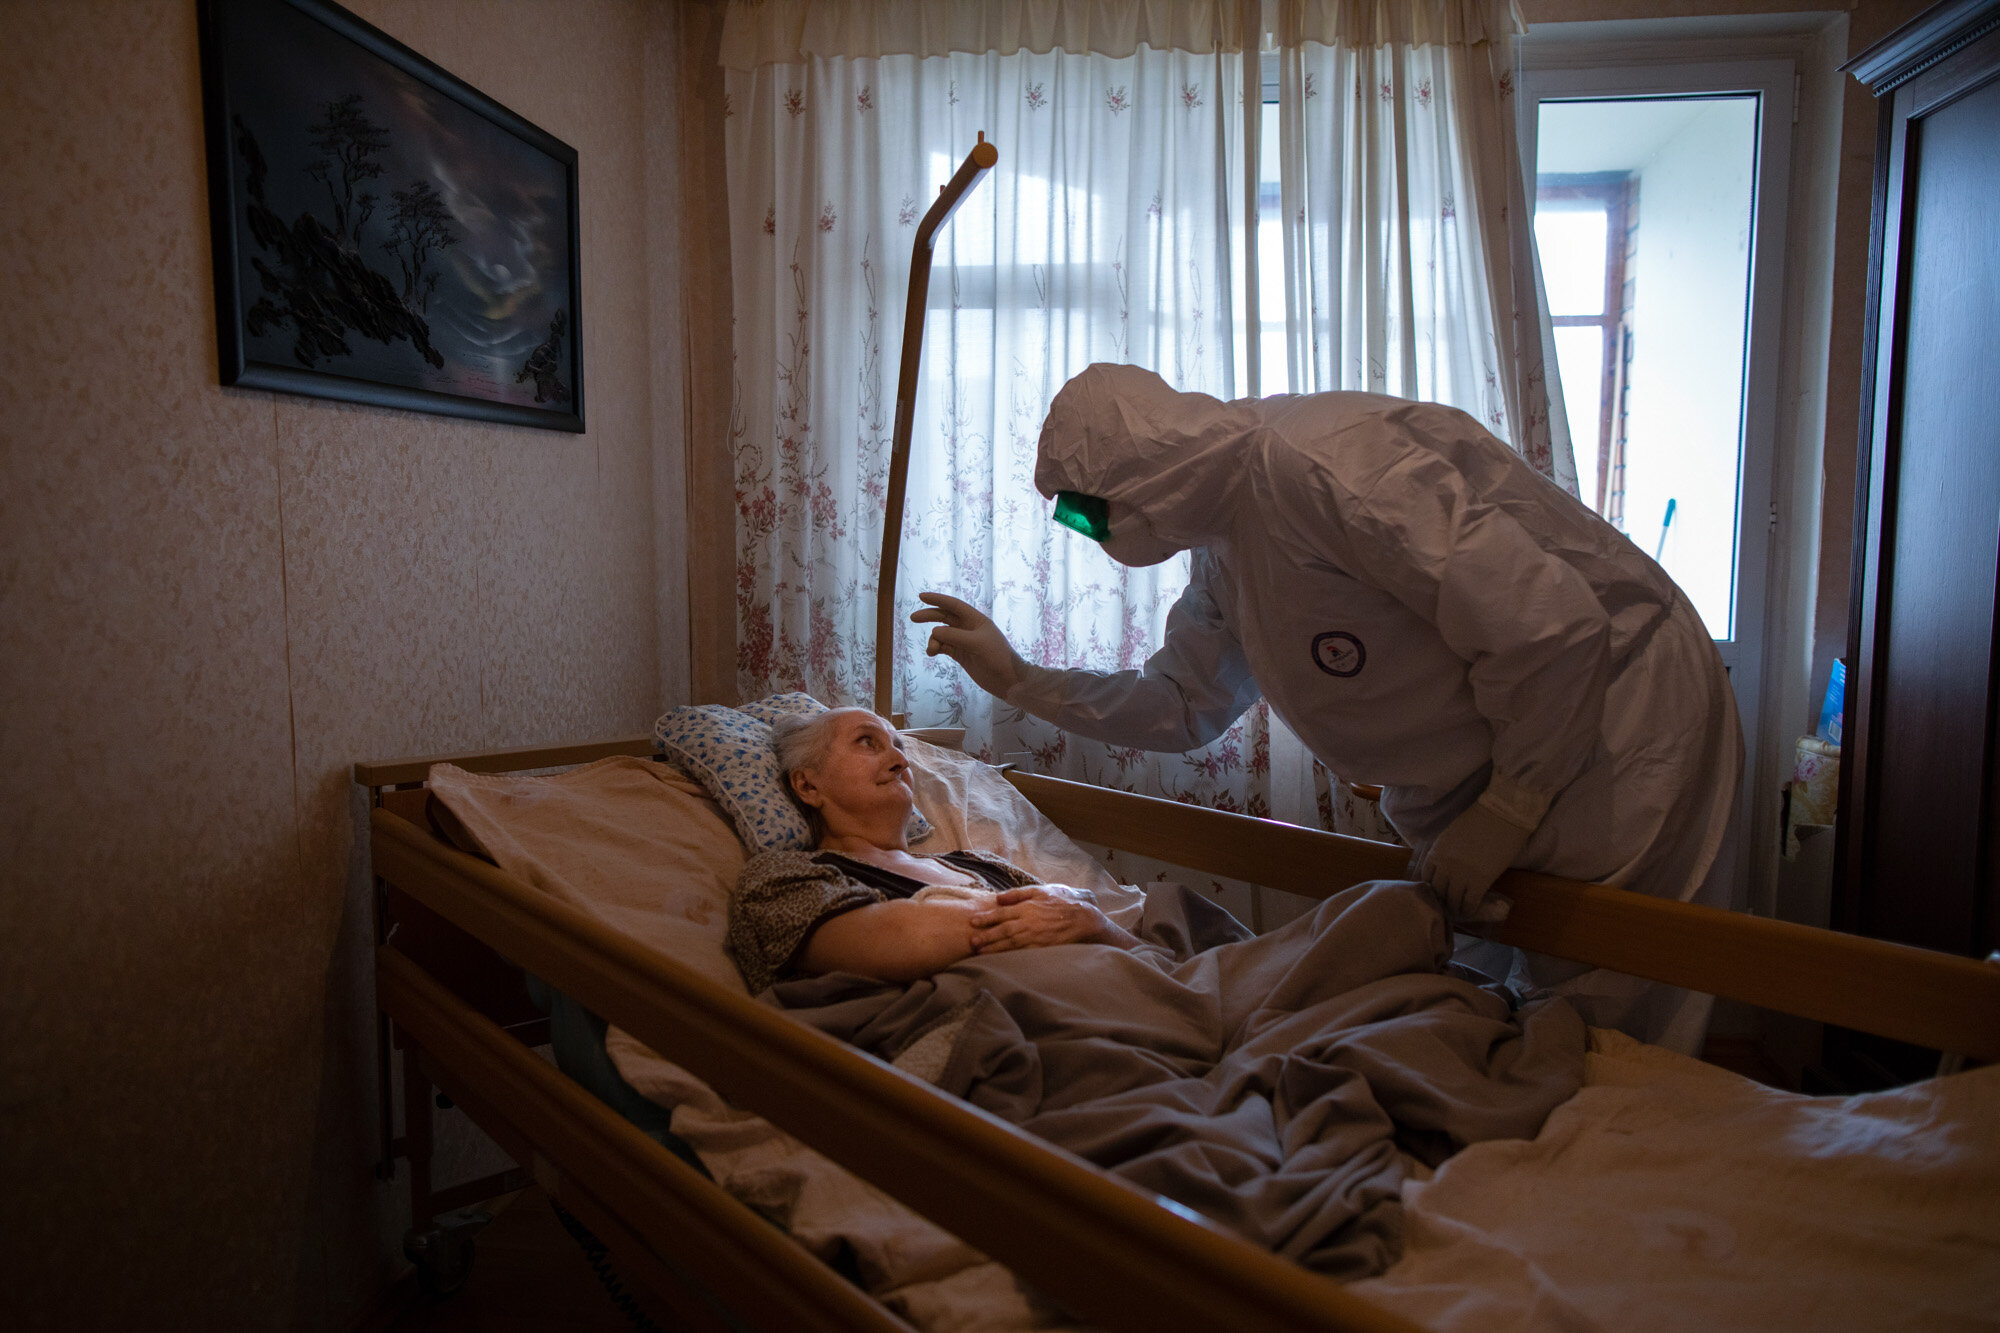 Father Vasily Gelevan, a Russian Orthodox priest, blesses Lyudmila Polyak, 86, who is believed to be suffering from COVID-19, at her apartment in Moscow. (AP Photo/Alexander Zemlianichenko)